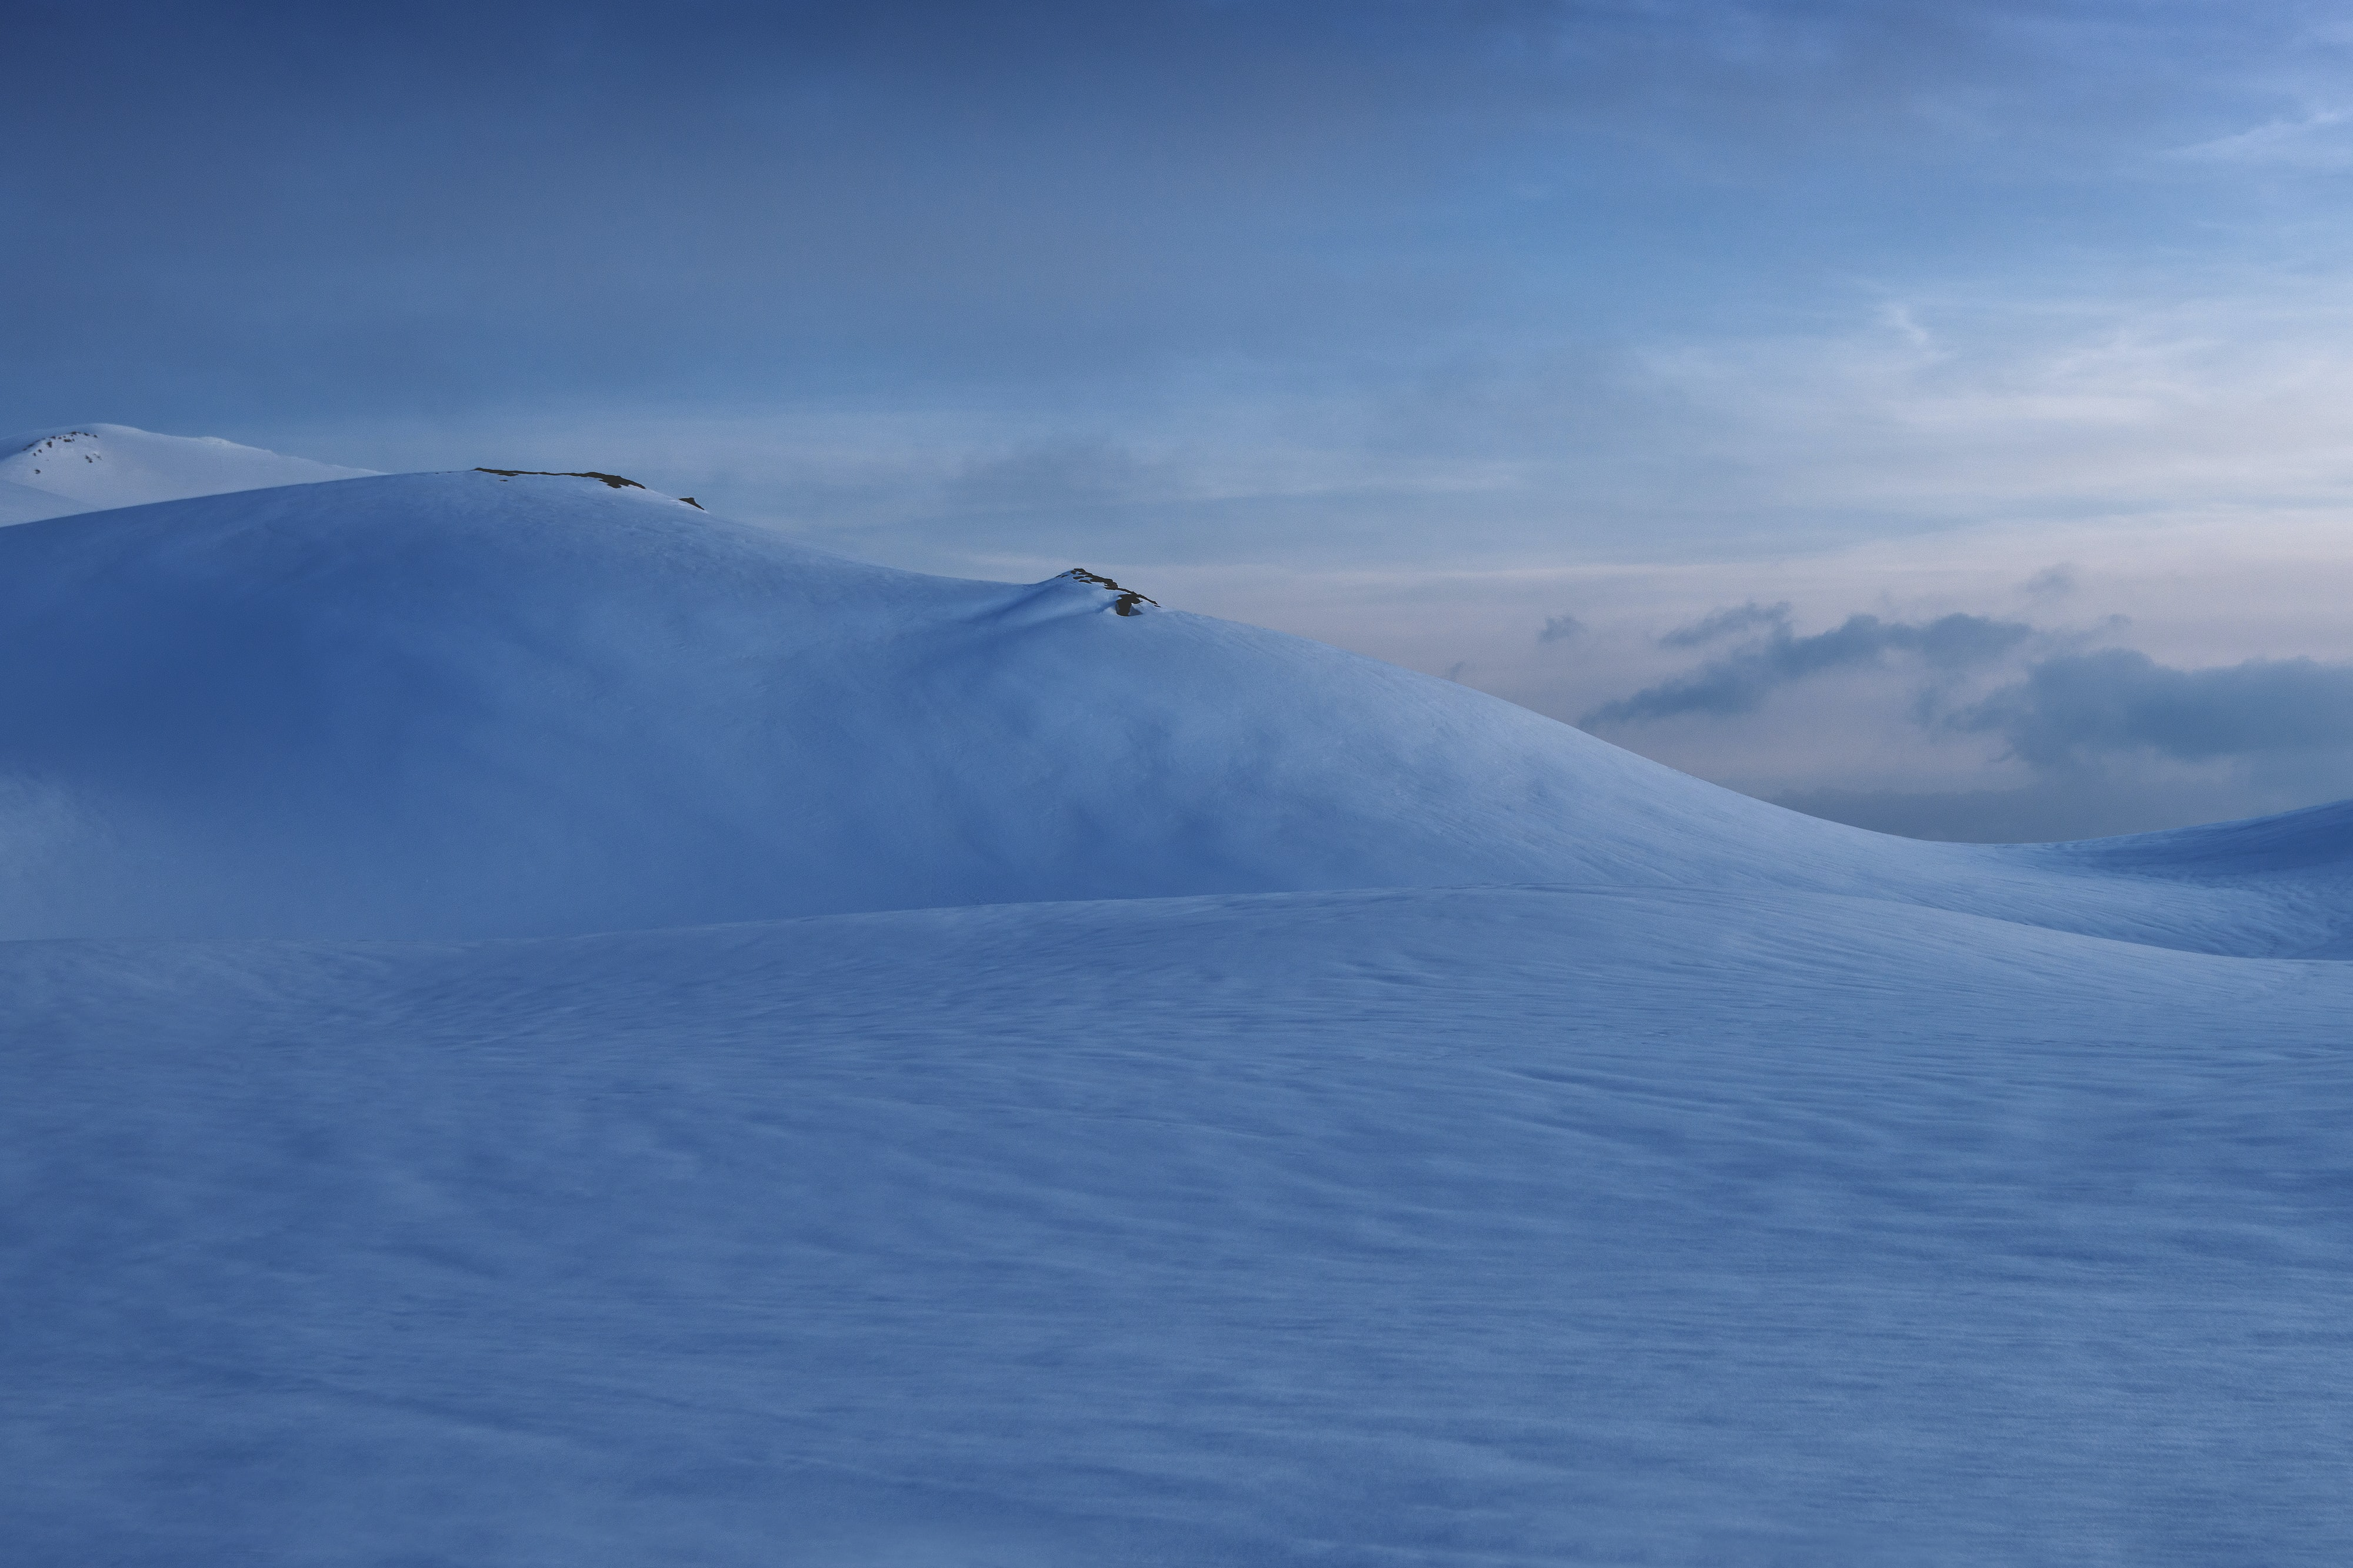 snow covered mountain landscape photography